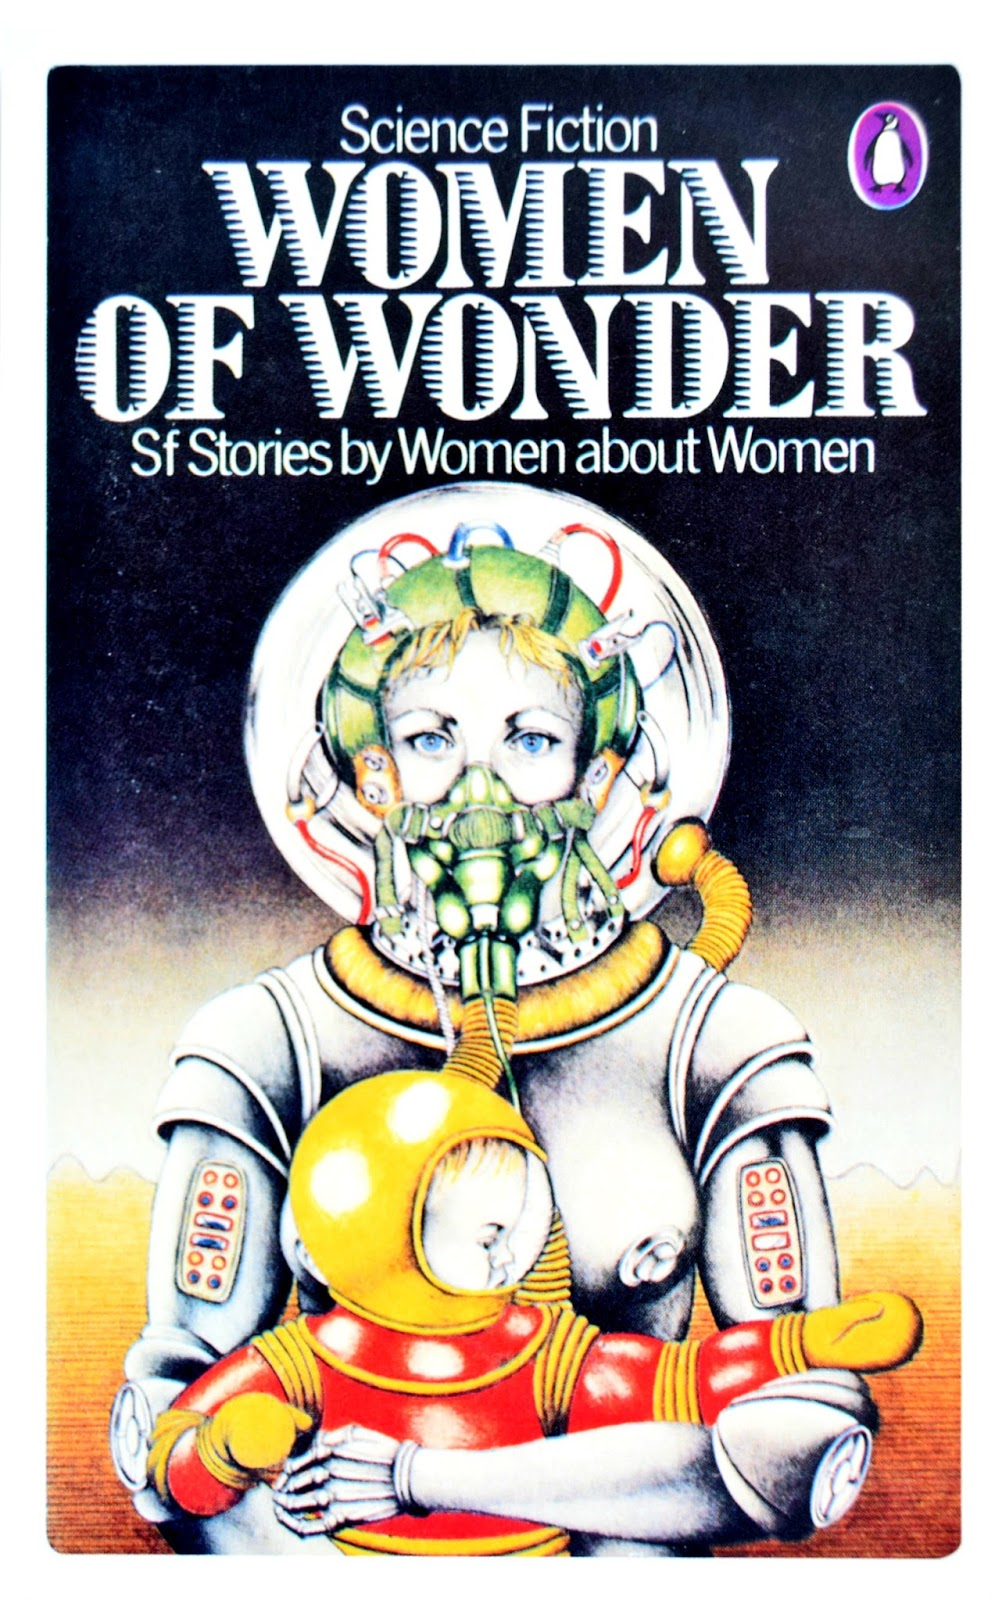 women of wonder cover book